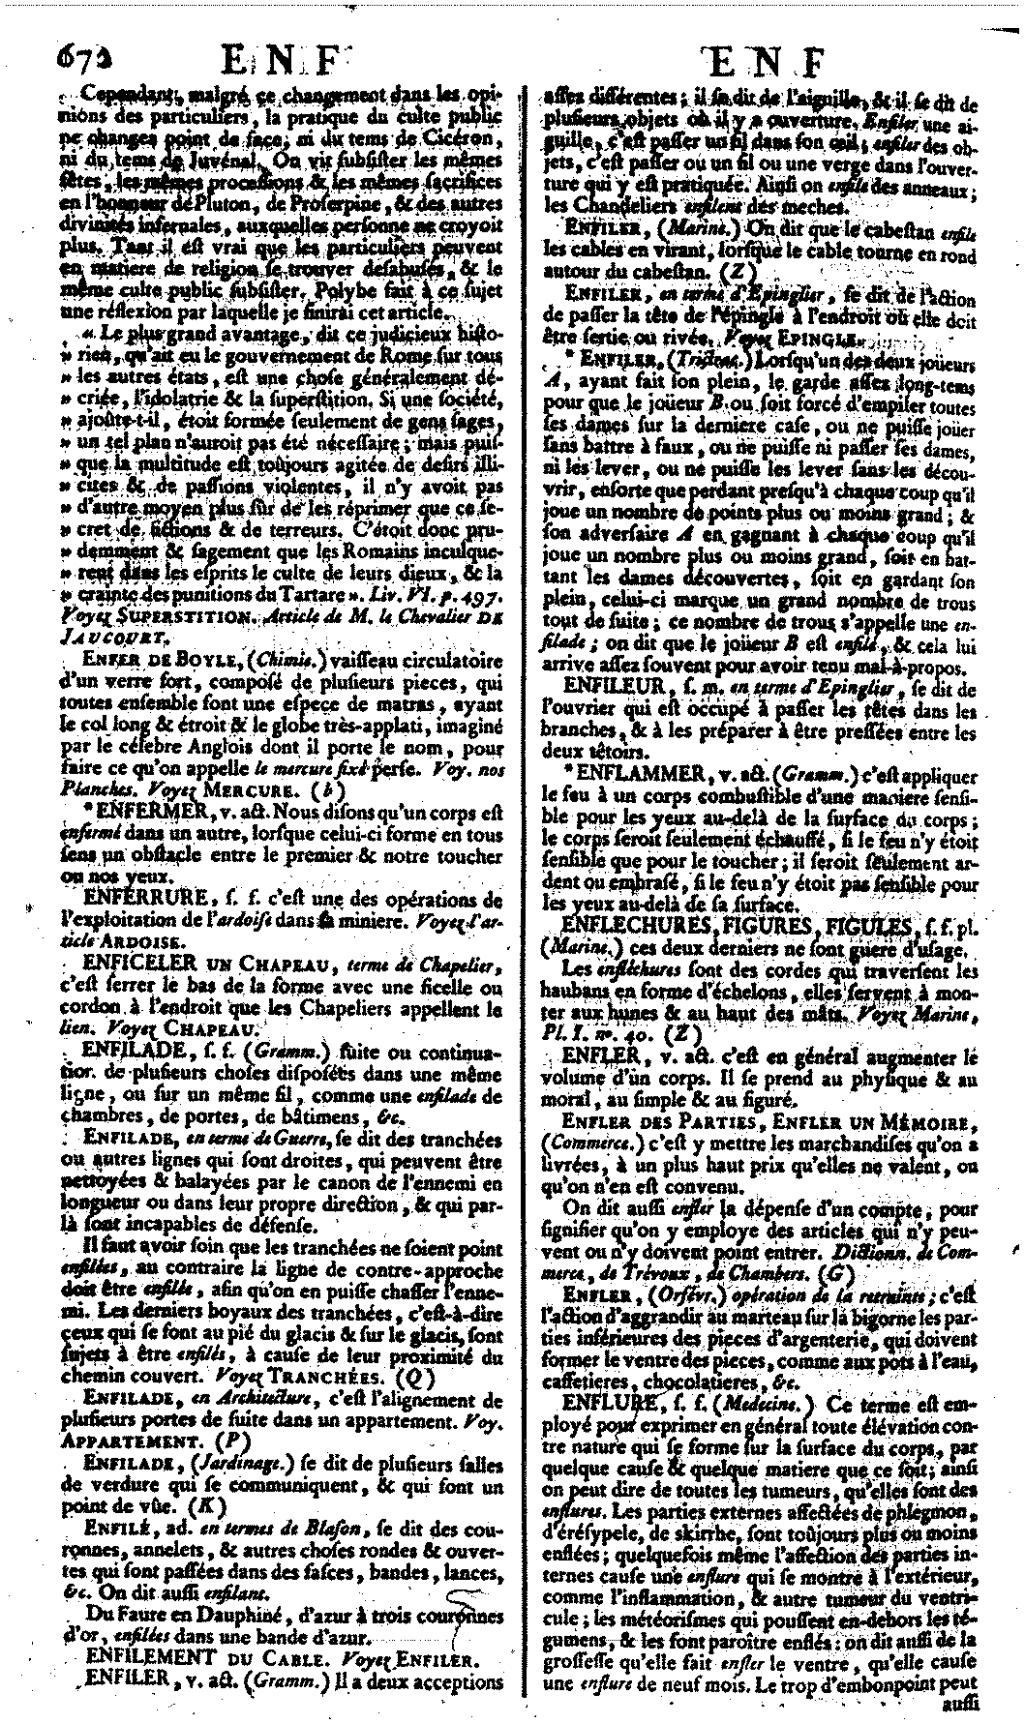 encyclopedie diderot tome 5